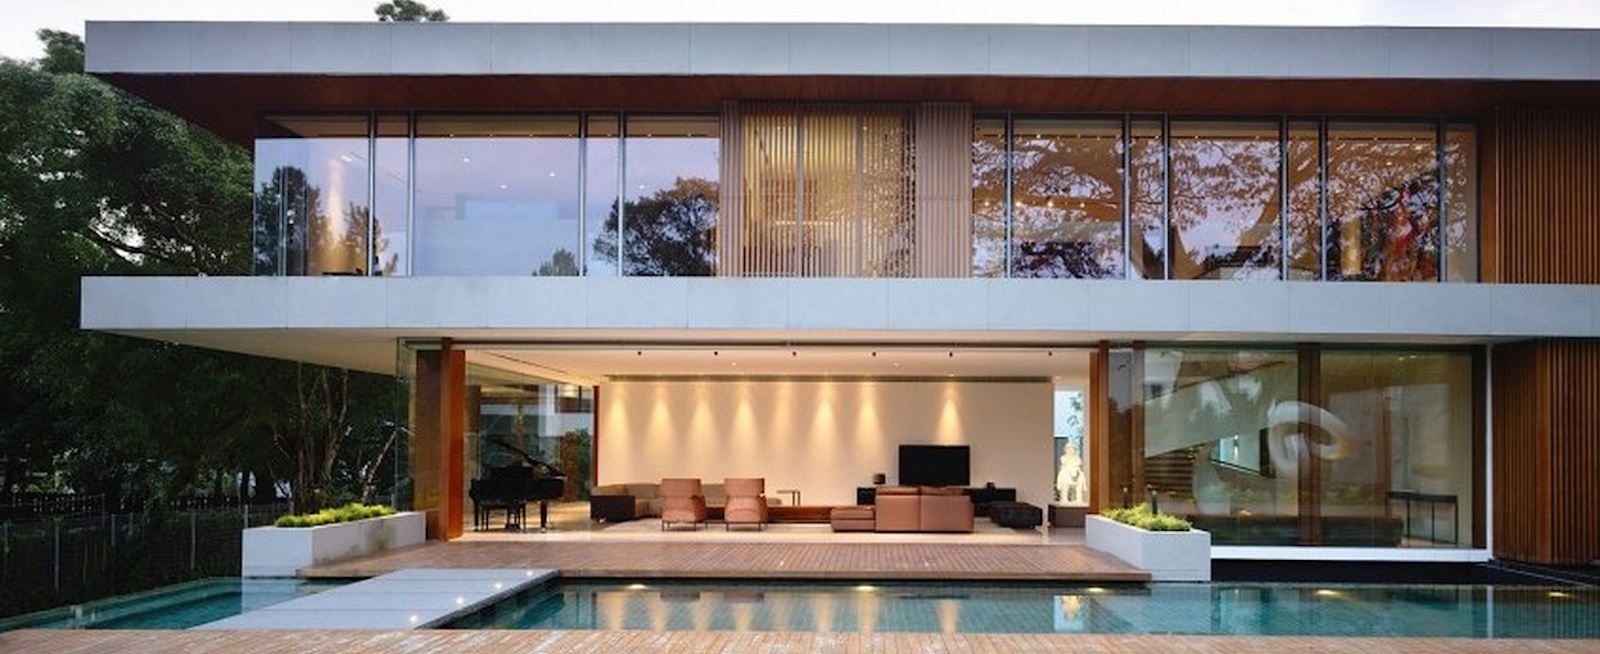 65BP-House – Modern esidence in Singapore by ONG&ONG rchitects ...